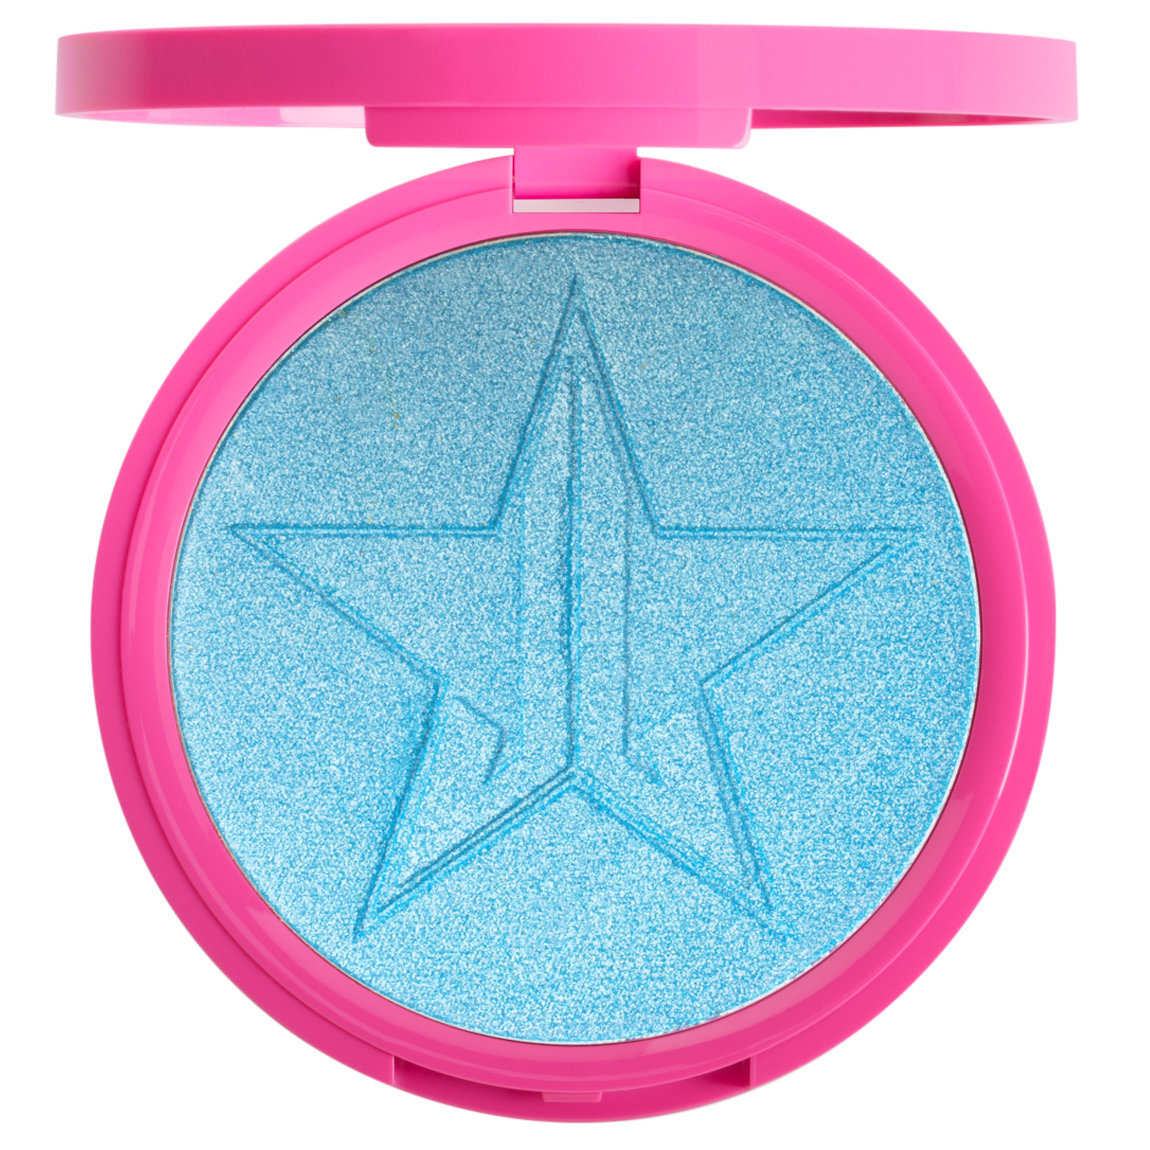 Jeffree Star Cosmetics Skin Frost Deep Freeze product swatch.